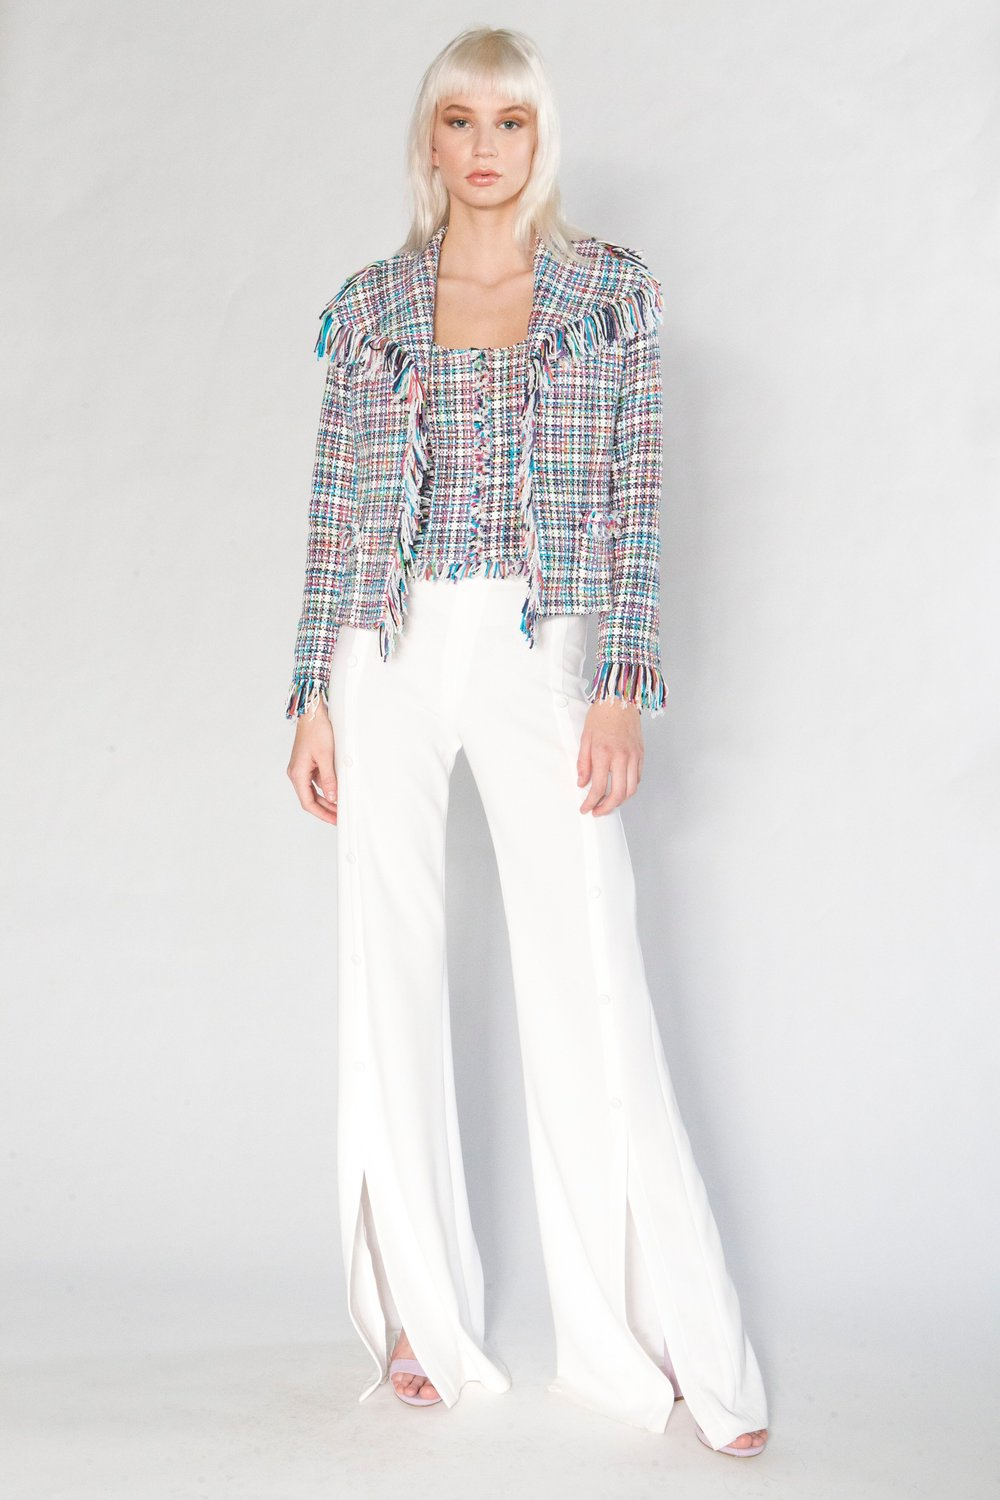 Summer Tweed Fringe Jacket, Summer Tweed Camisole, and Split Pant w/Buttons